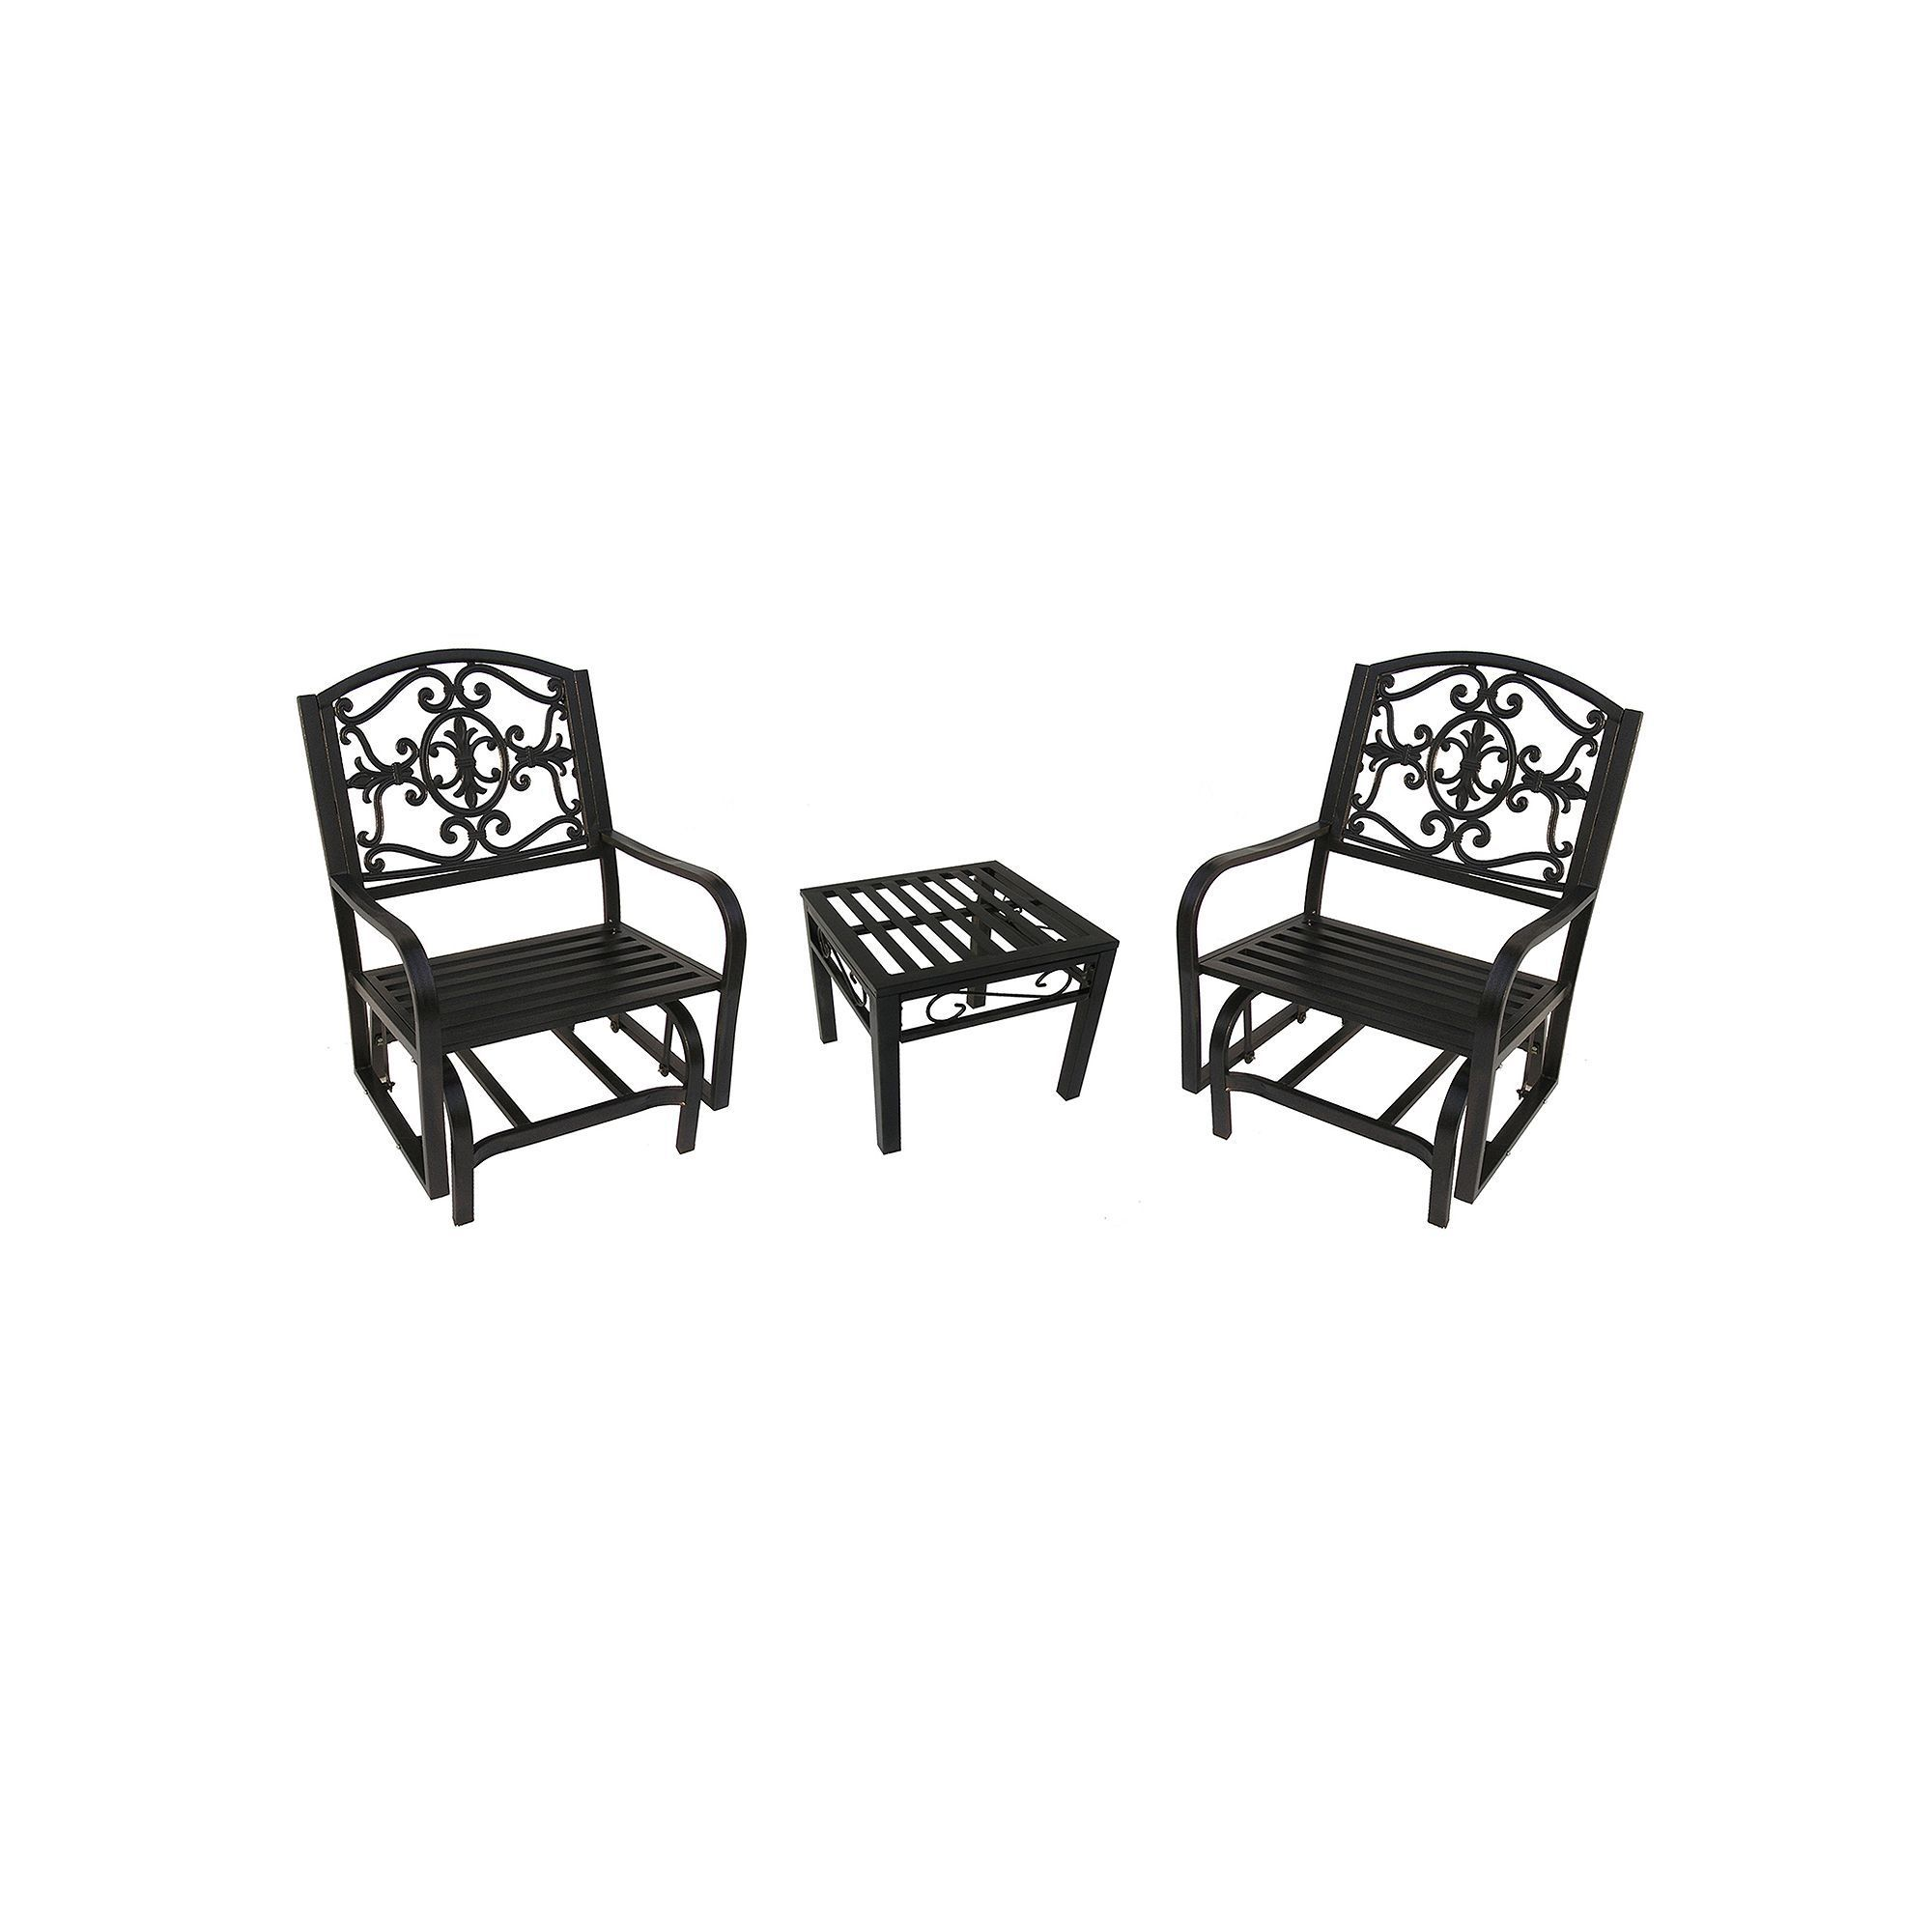 Outdoor Lakeville Patio Glider Chair 3 piece Set